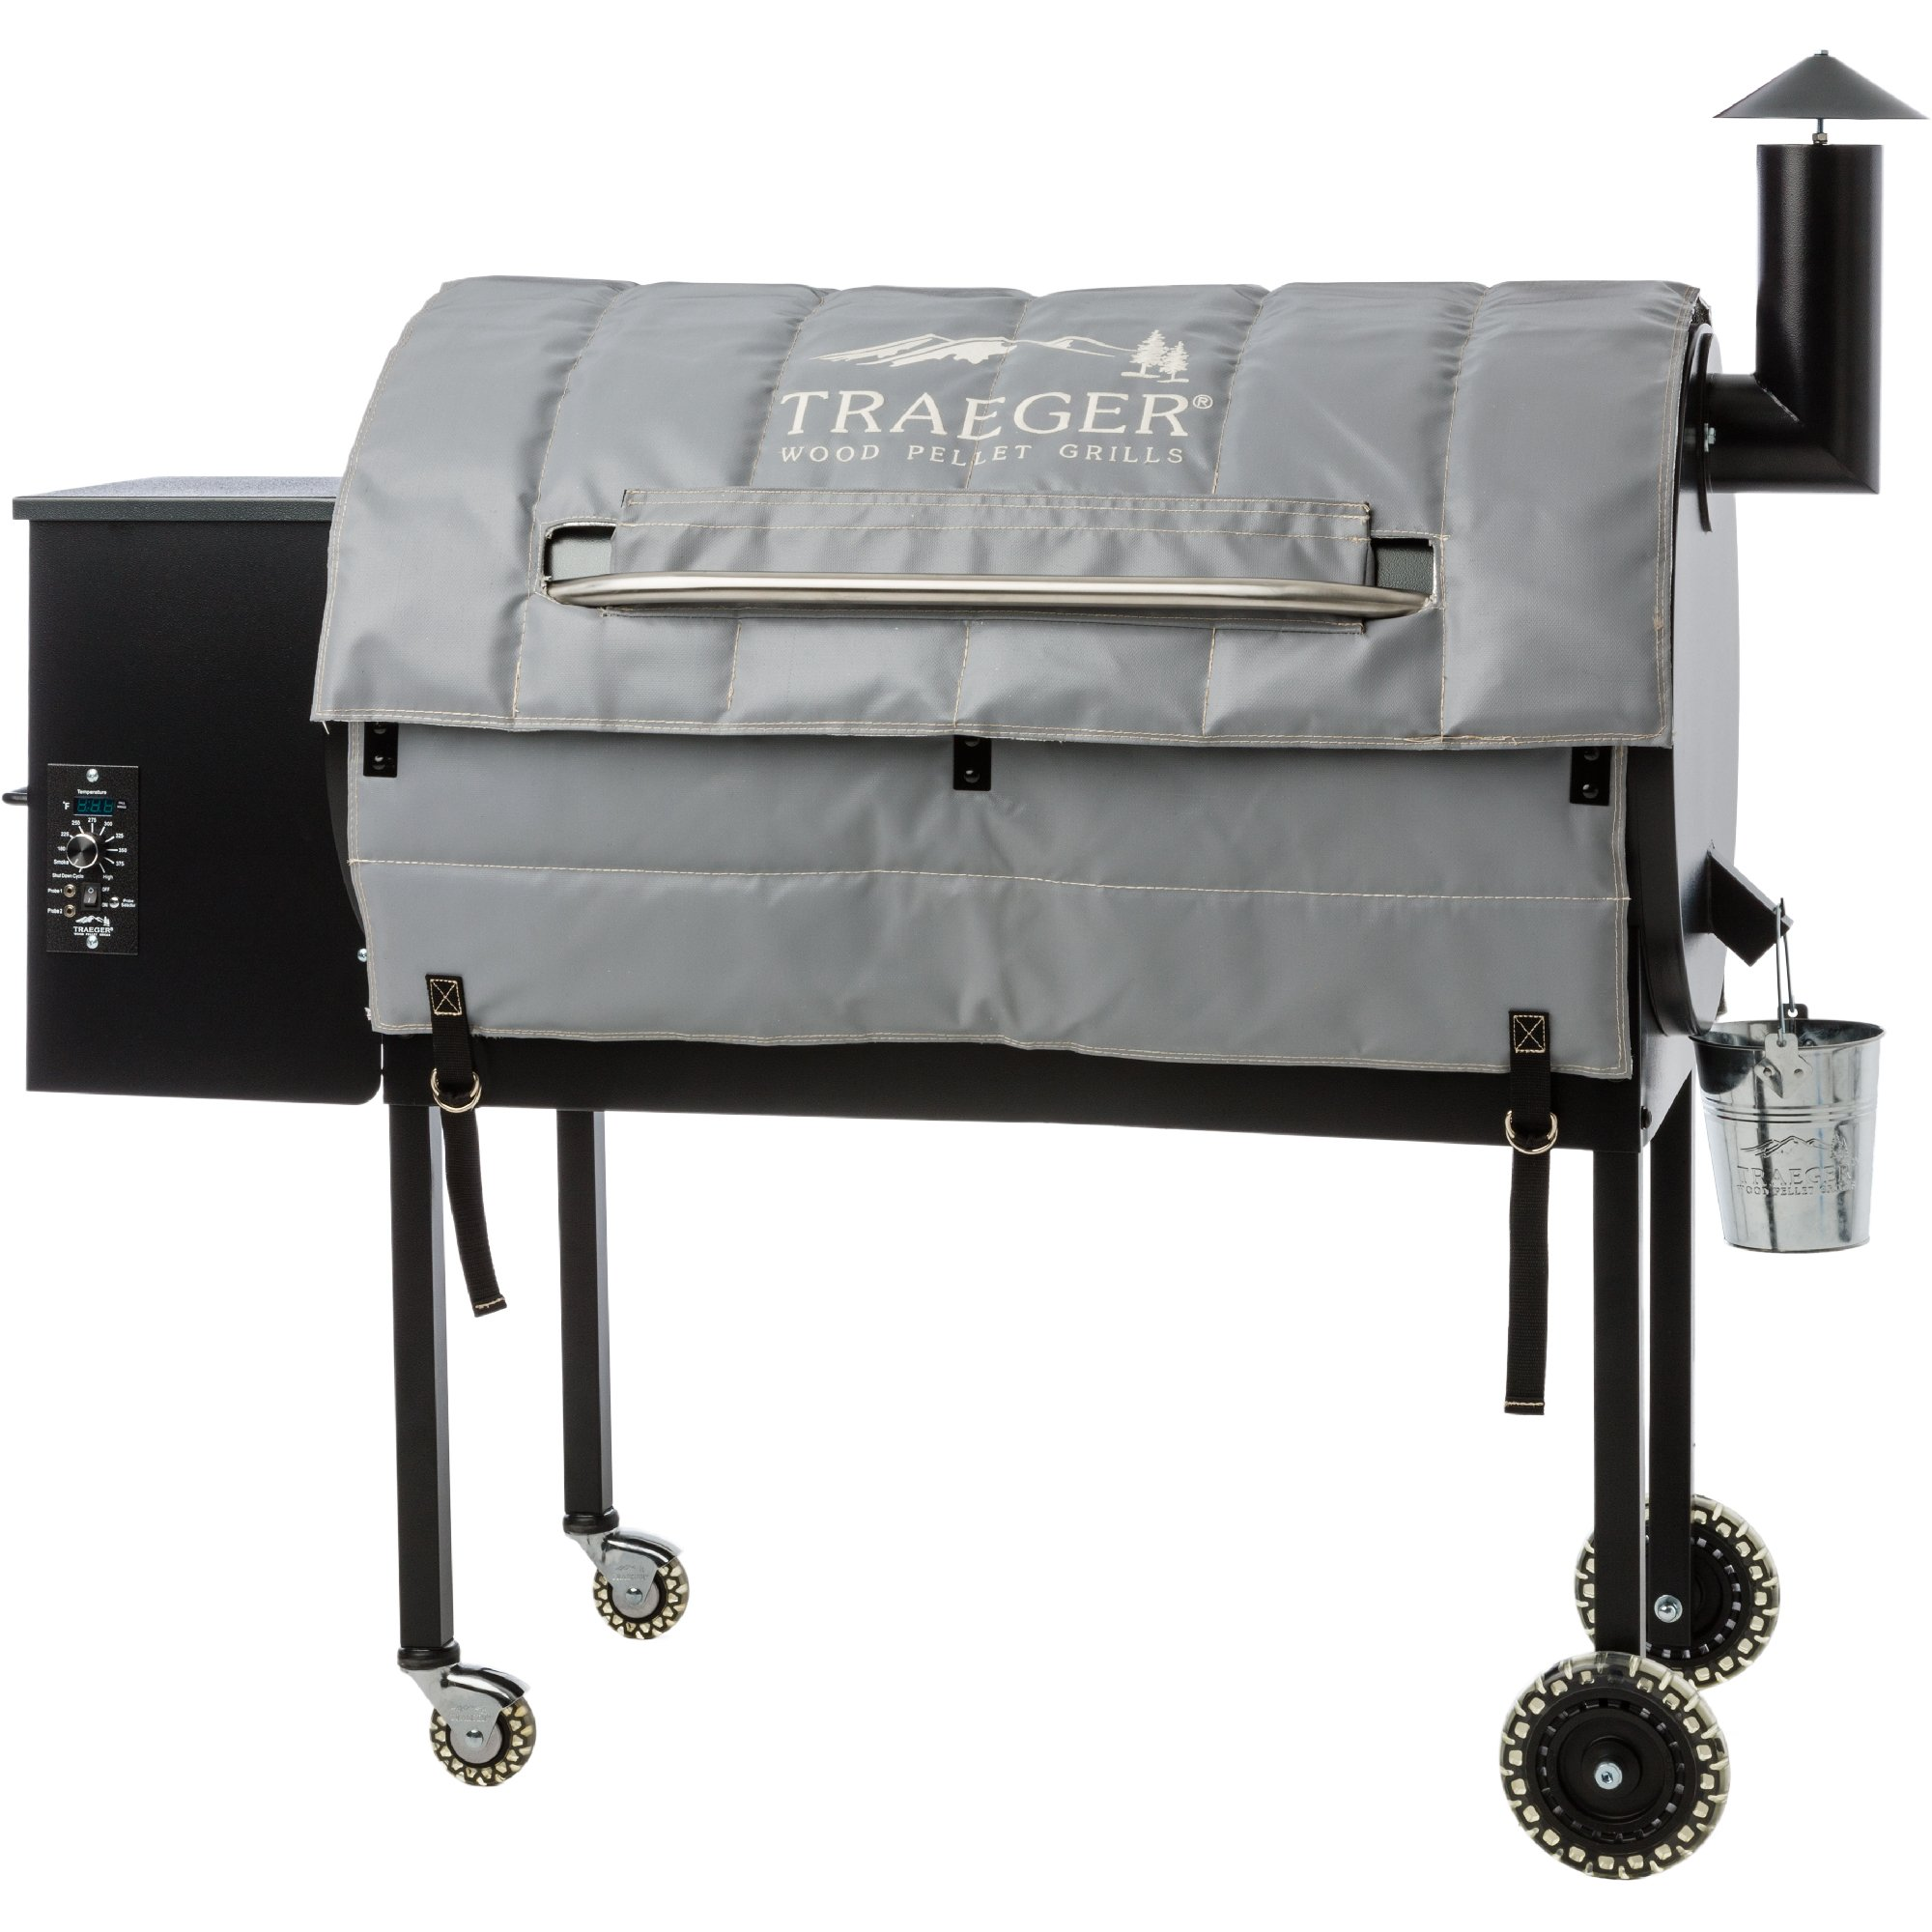 Traeger BAC345 BBQ Grill Insulated Cover Blanket by Traeger